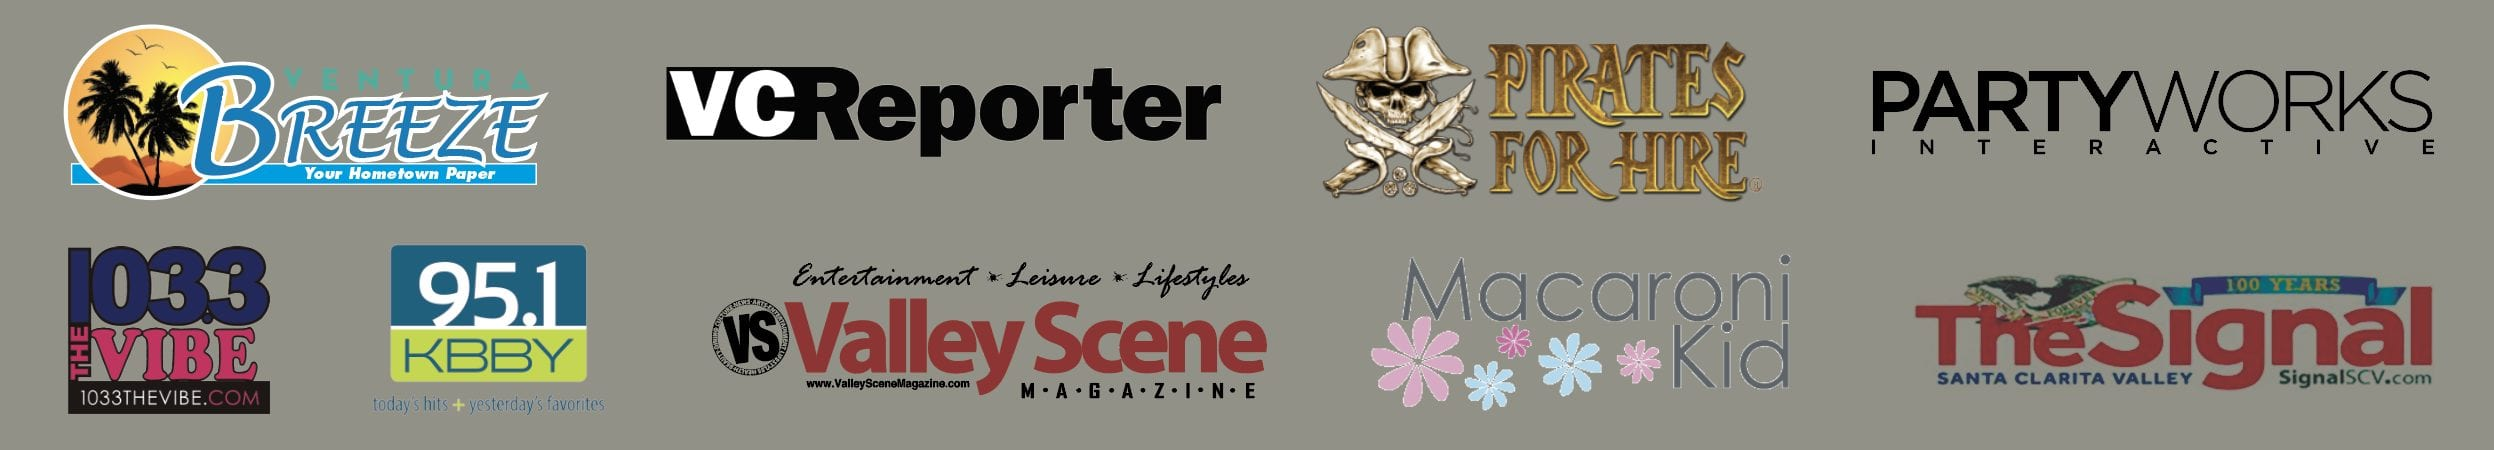 pirates day sponsors 2019